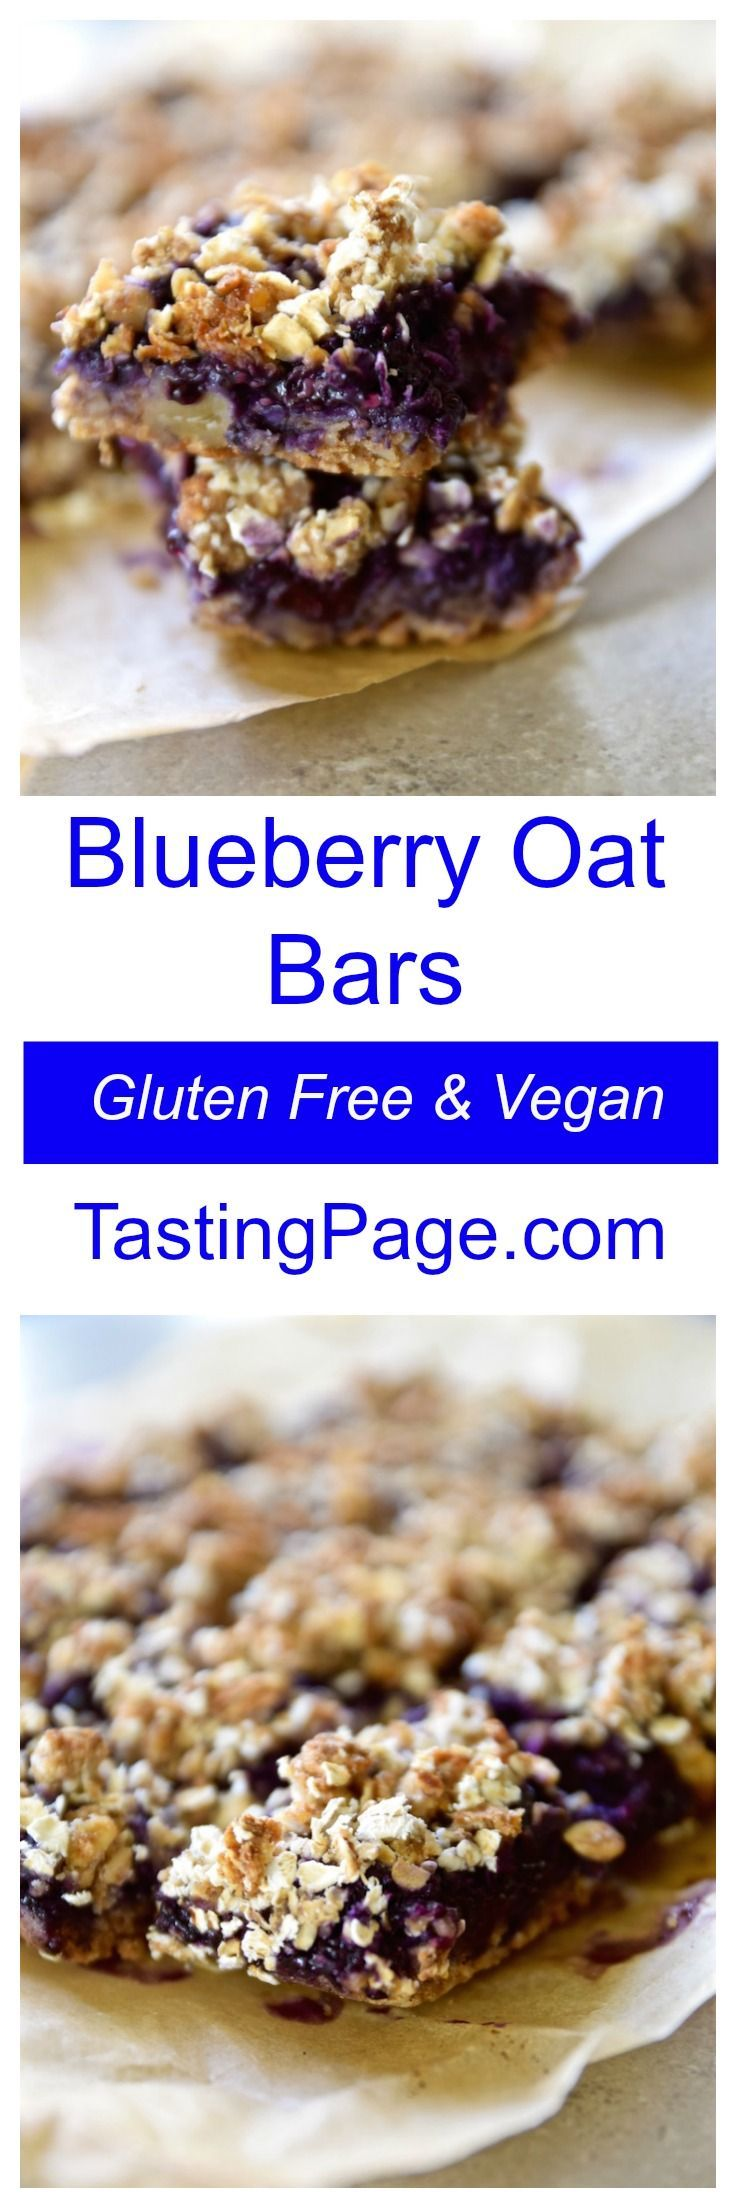 Gluten Free Vegan Blueberry Oat Bars. No refined sugar so eat them for breakfast or dessert | TastingPage.com